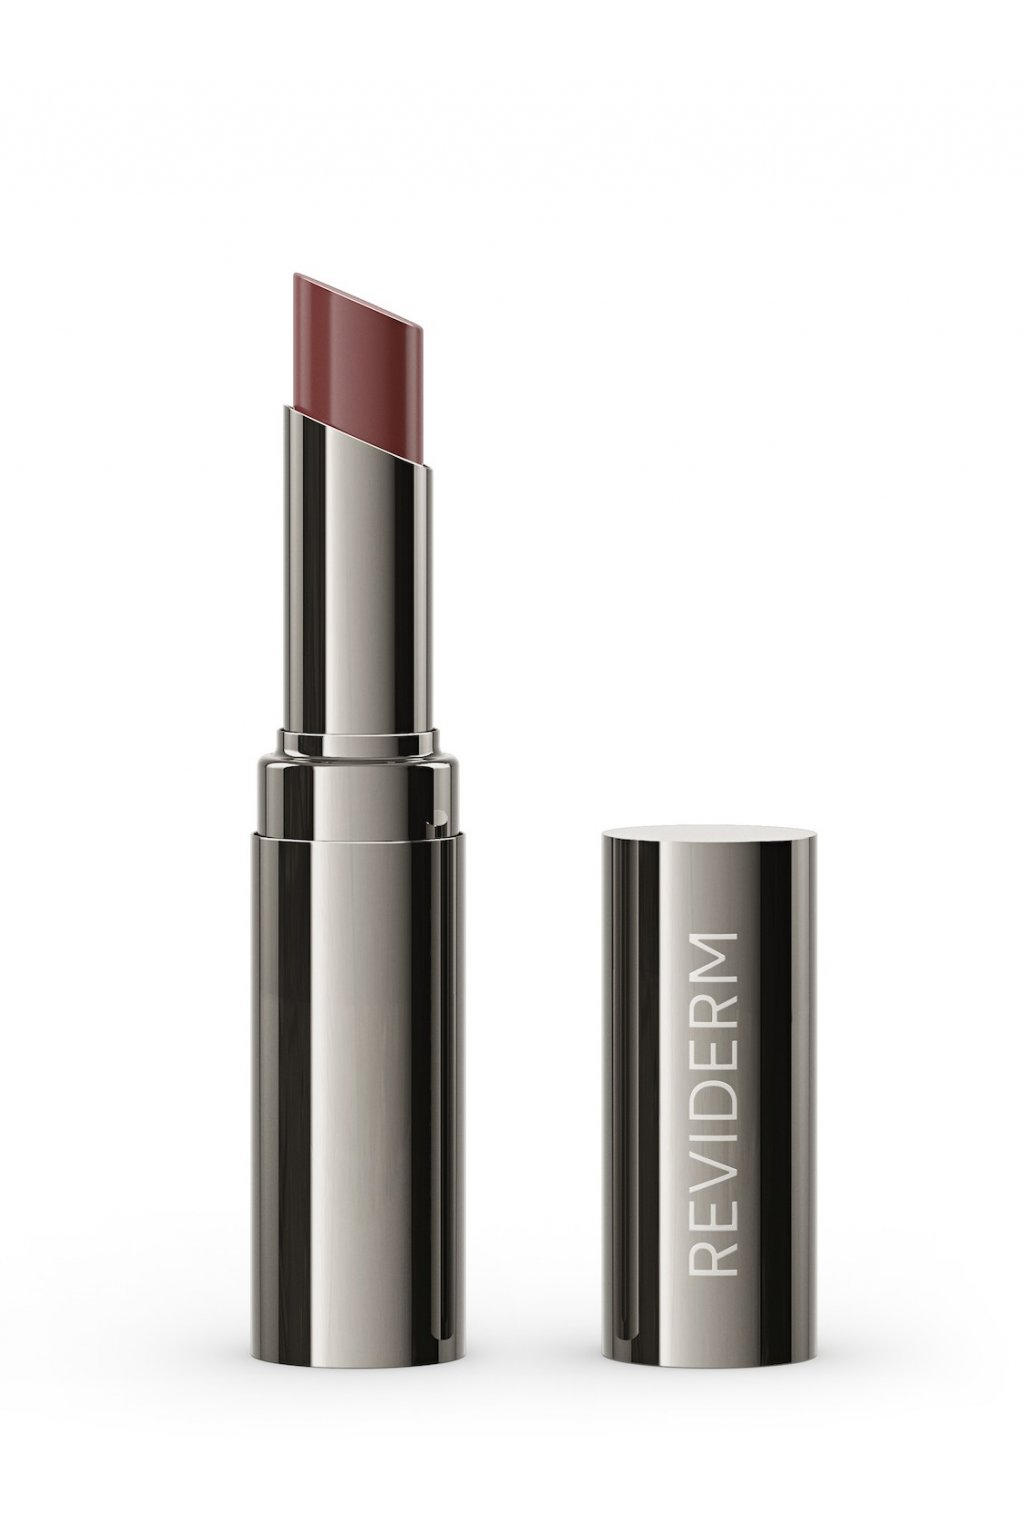 35402 mineral glow lips 2N nude touch